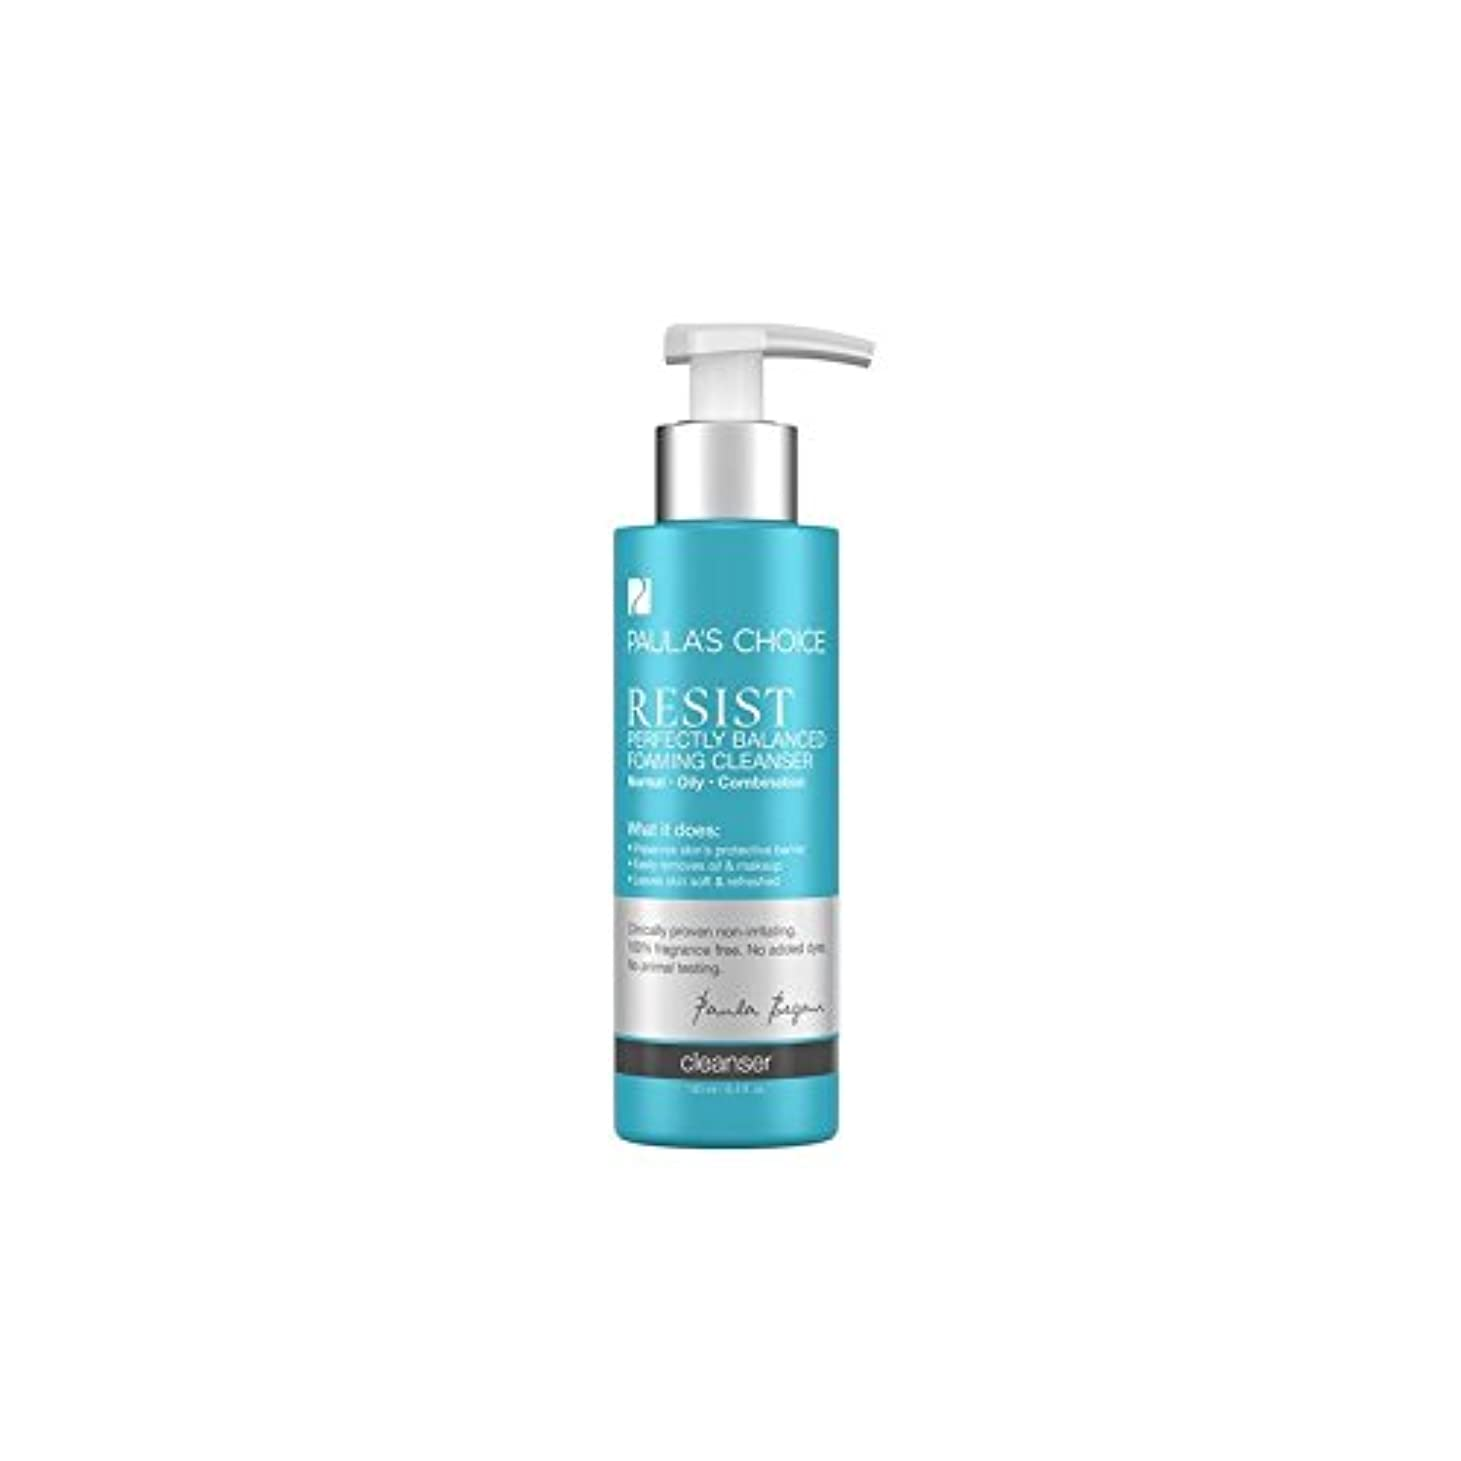 Paula's Choice Resist Perfectly Balanced Foaming Cleanser (190ml) (Pack of 6) - ポーラチョイスは完璧にバランスの取れた発泡クレンザー(190...